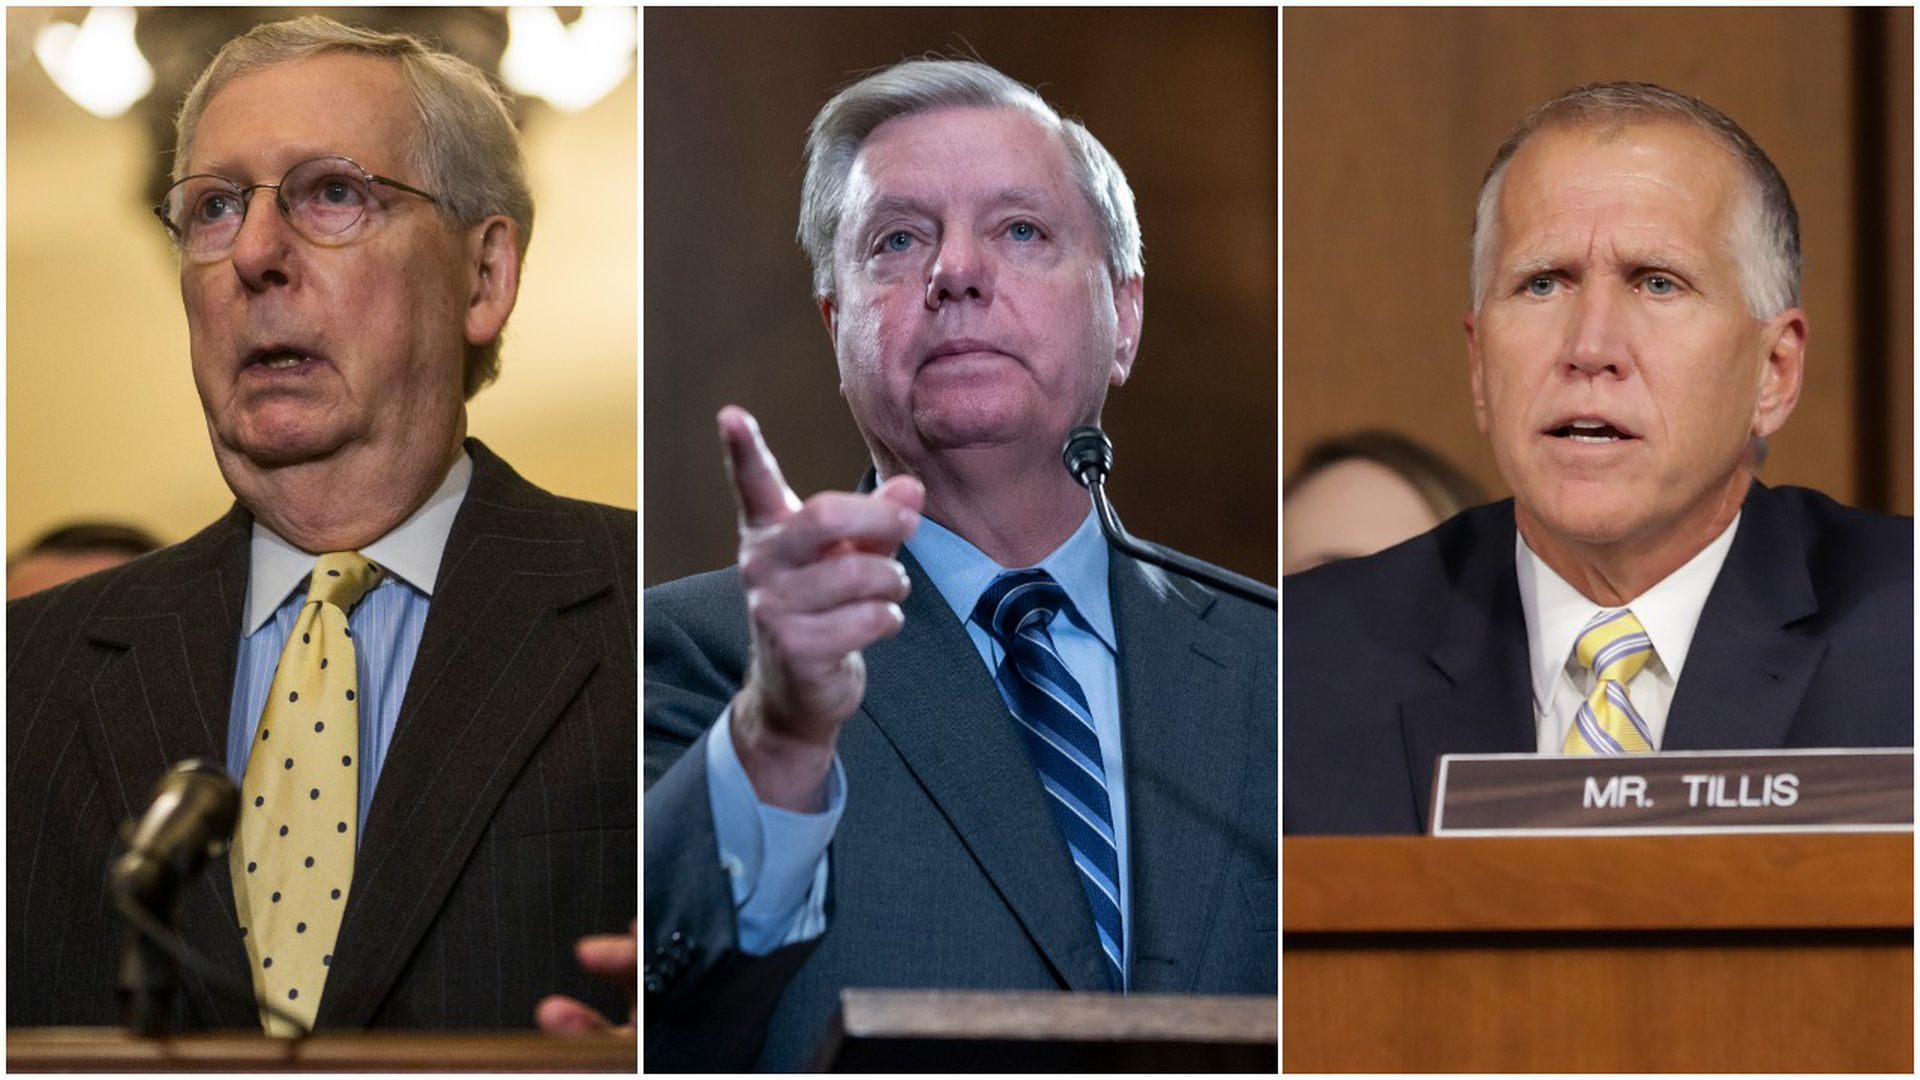 Senators Mitch McConnell, Lindsey Graham and Thom Tillis